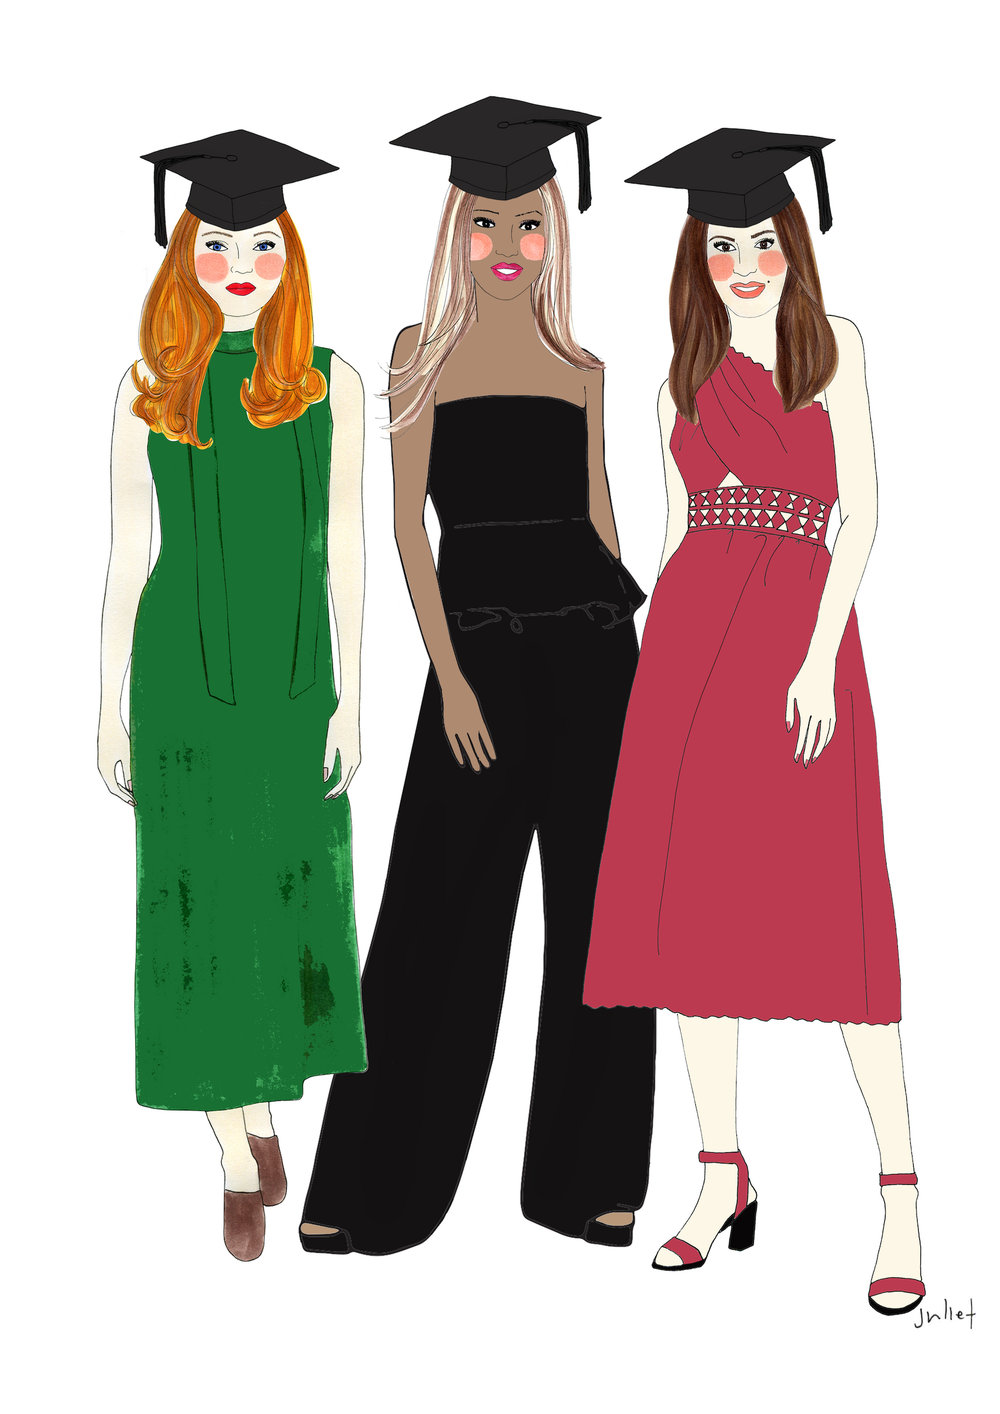 Illustration by Juliet Sulejmani for Wardrobe Crisis